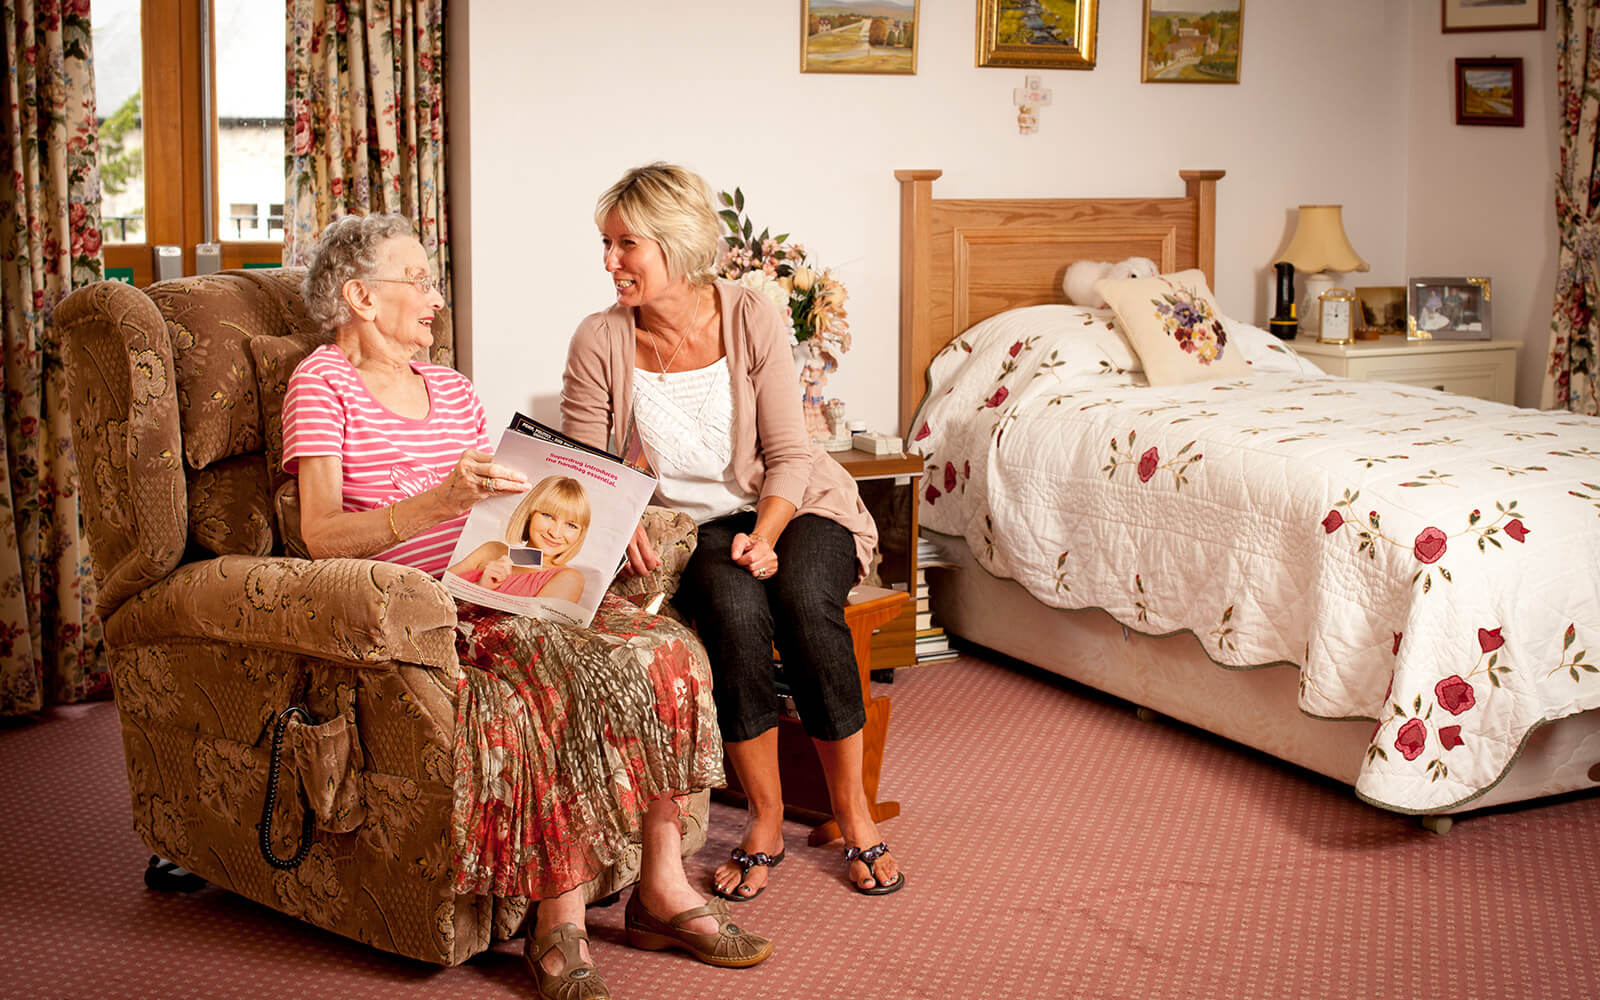 Rockingham House Care Home - Malton